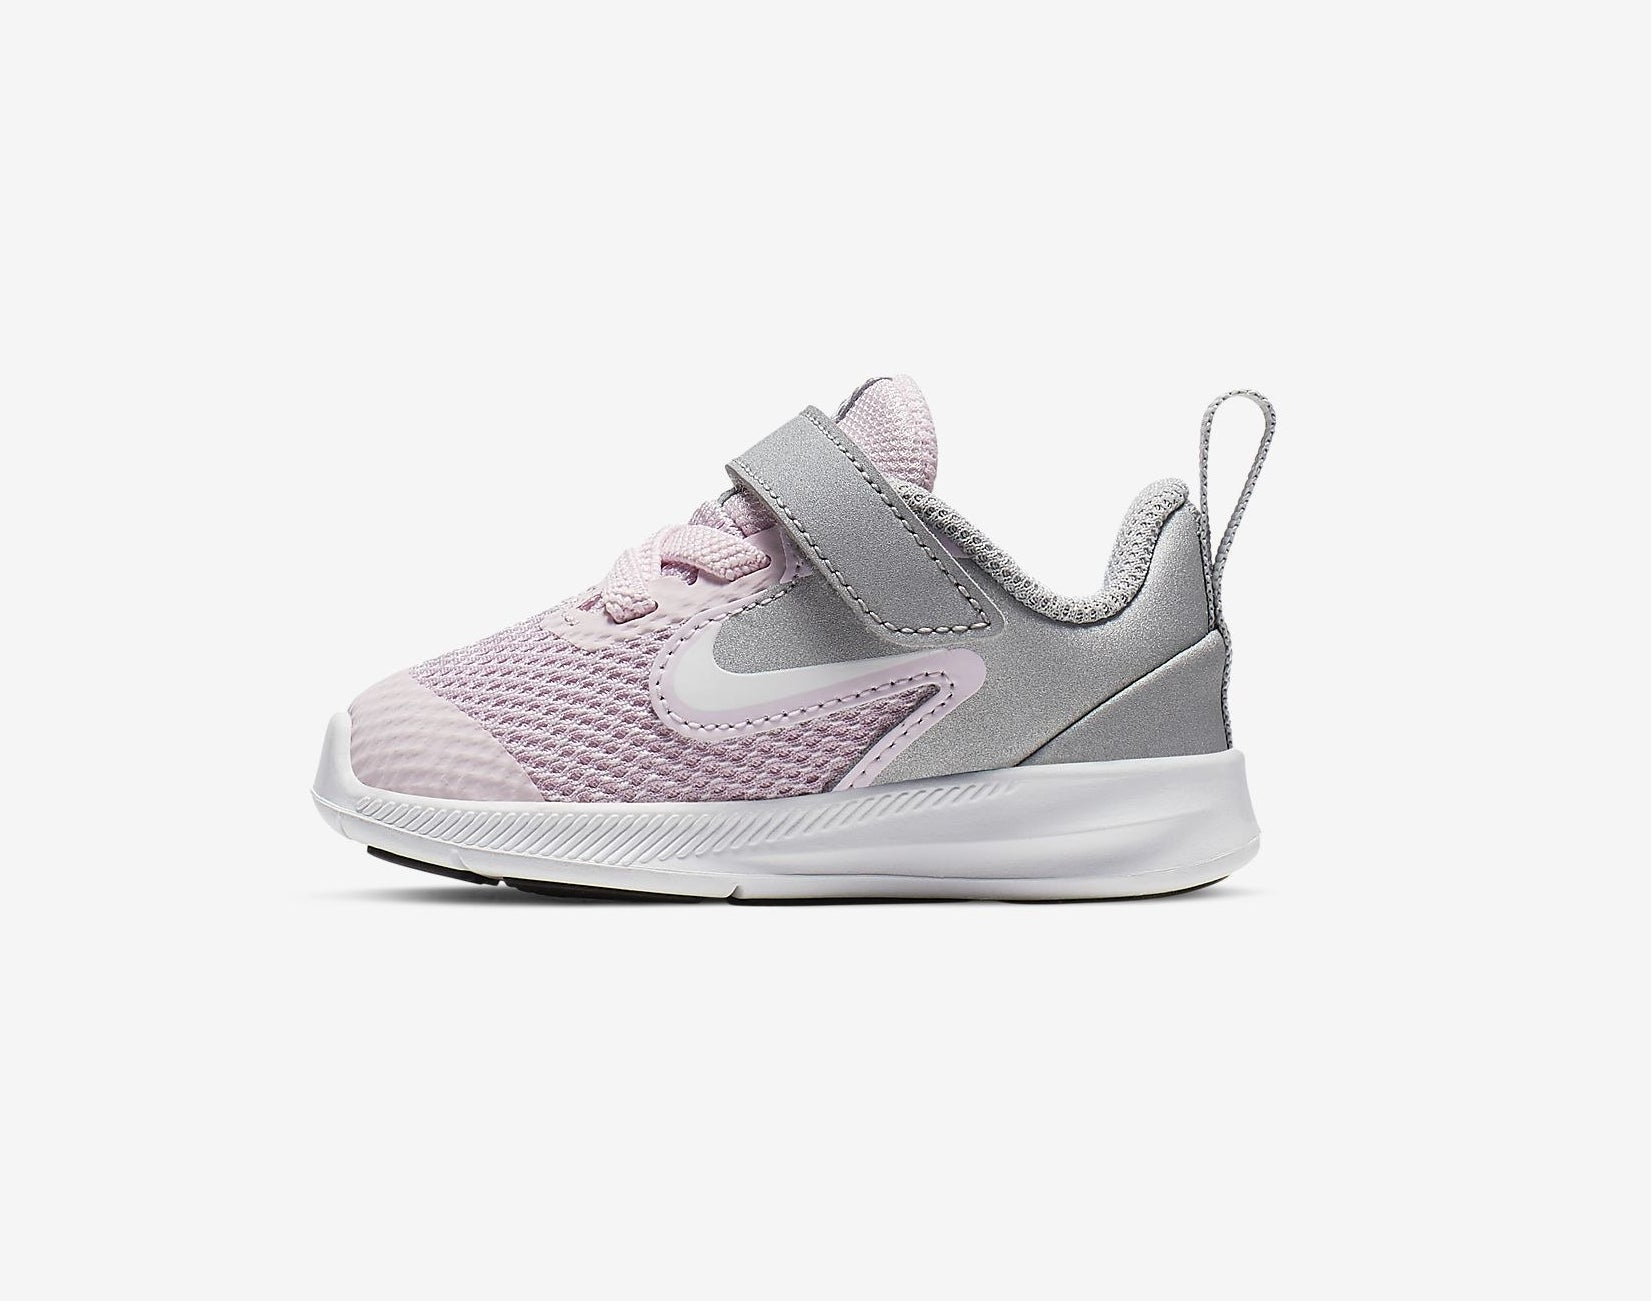 The small shoe with lilac and grey design